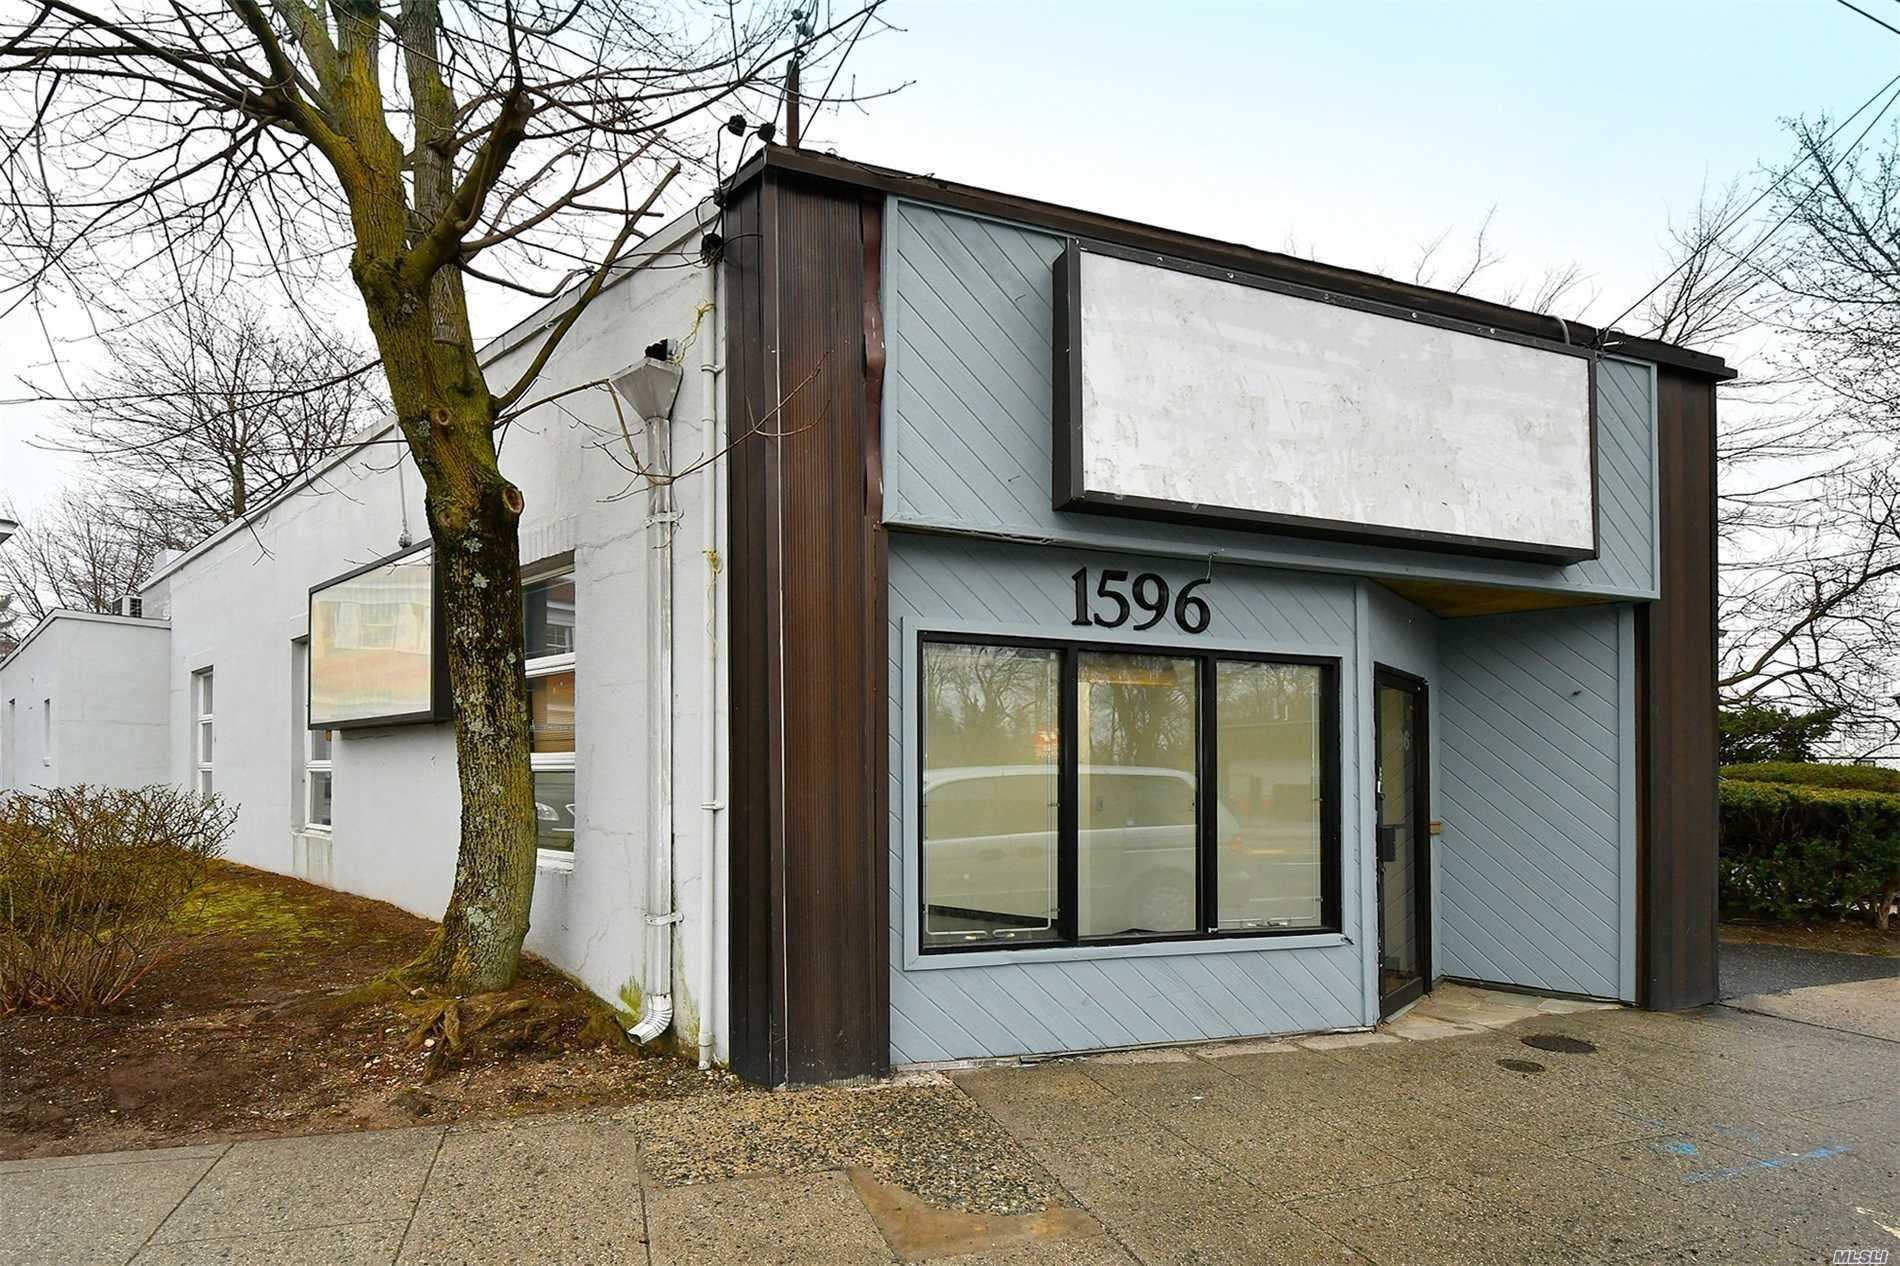 Free Standing Building Ready For Immediate Occupancy, Clean And Spacious. Full Finished Basement, Perfect For Accountant, Insurance Agency, Retail, Hairstylist Or Real Estate, Banks On Either Side, 1600 Square Feet, Great Visibility, Minutes To Amazing Huntington Village And The Lirr!